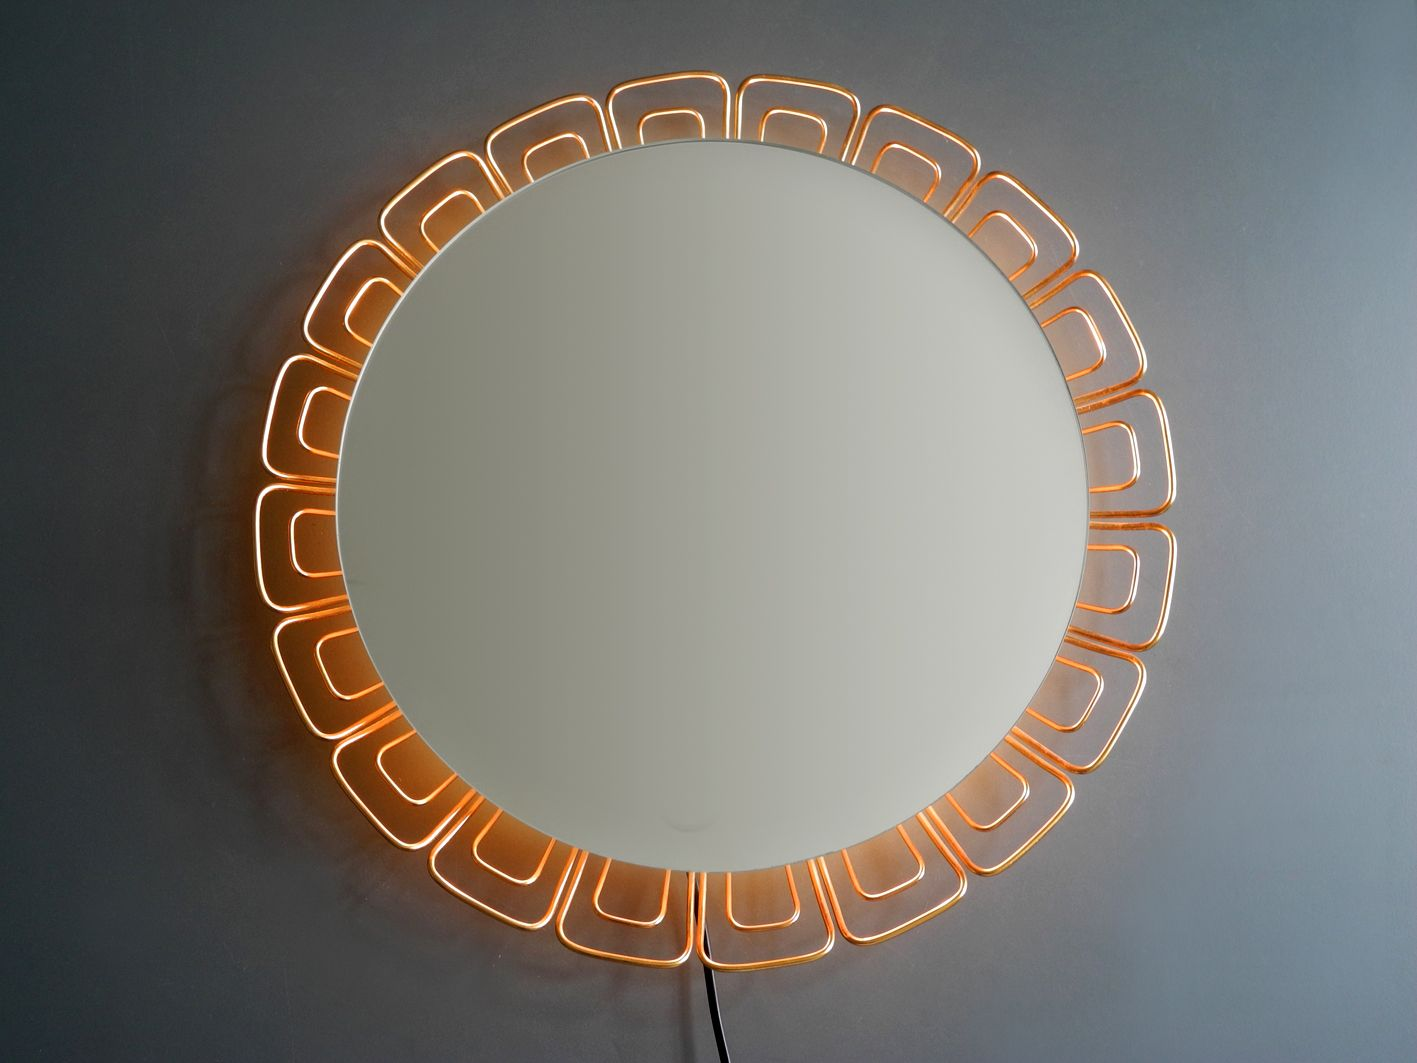 Illuminated frame mirror